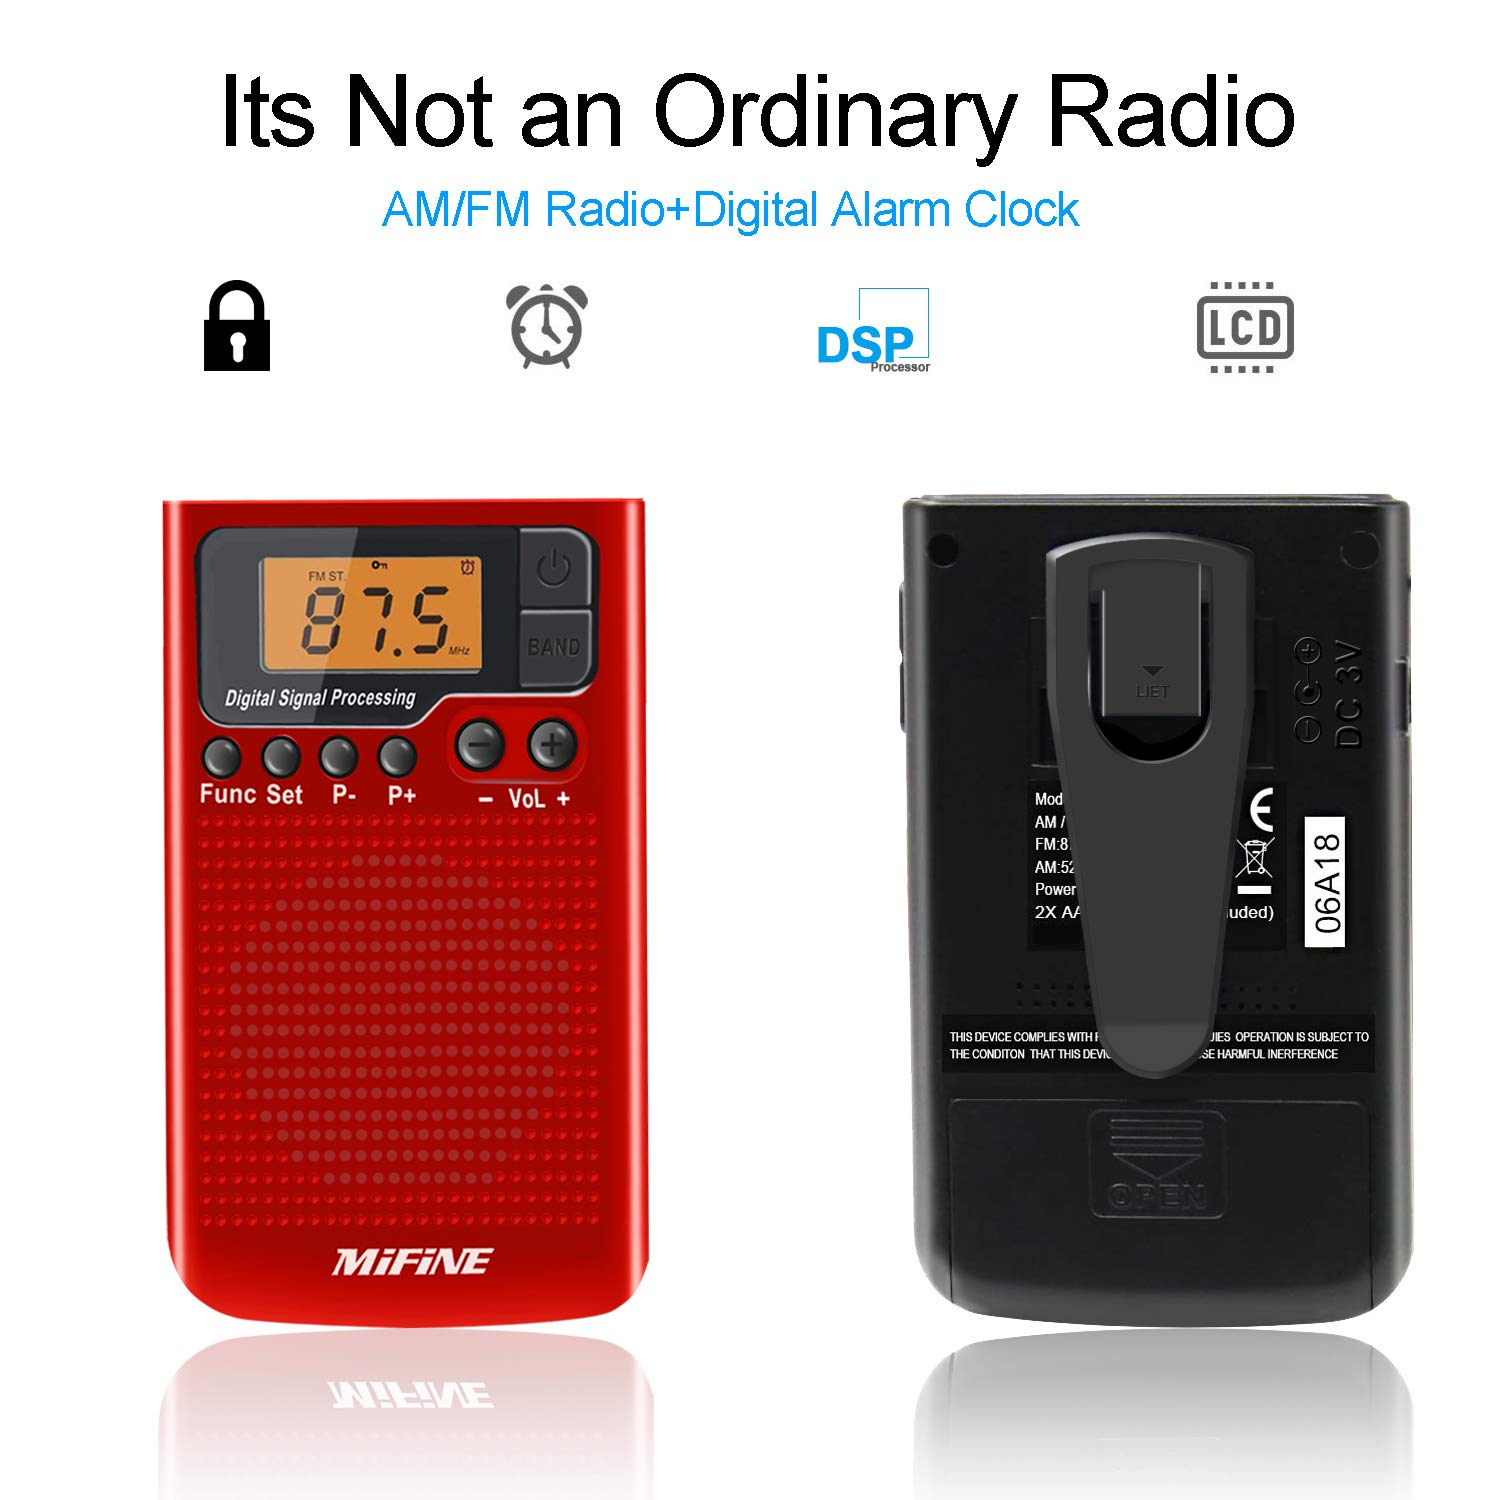 AM FM Radio - Portable Radio with Alarm Clock and Sleep Timer, Digital Tuning Stereo Radio with 3.5mm Headphone Jack for Walking Jogging Gym Camping (Red)